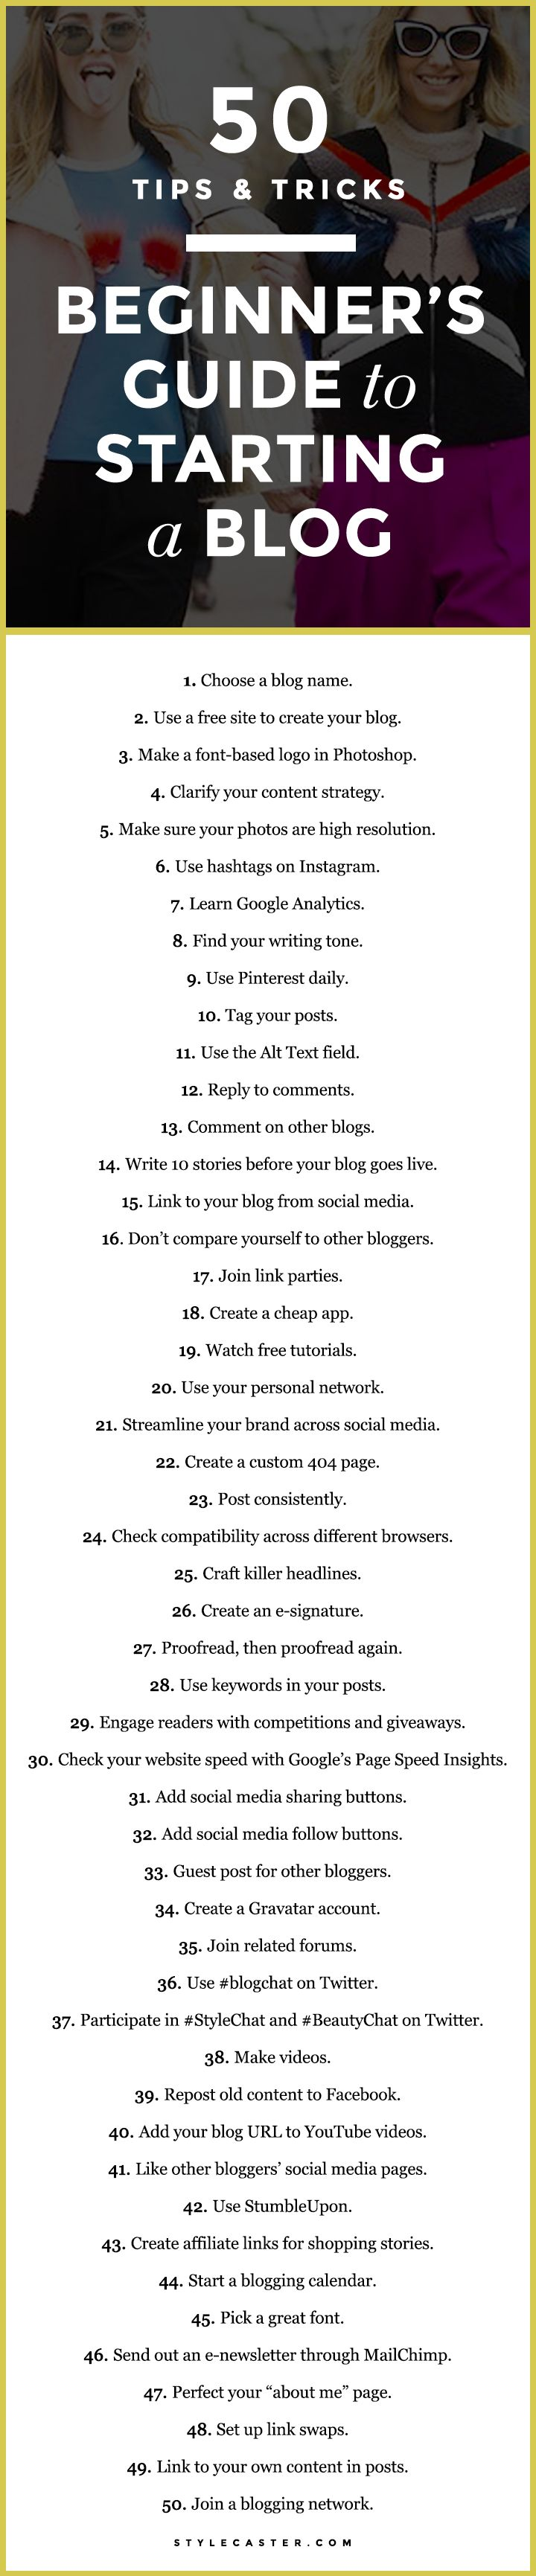 A Beginners Guide to Starting a Blog